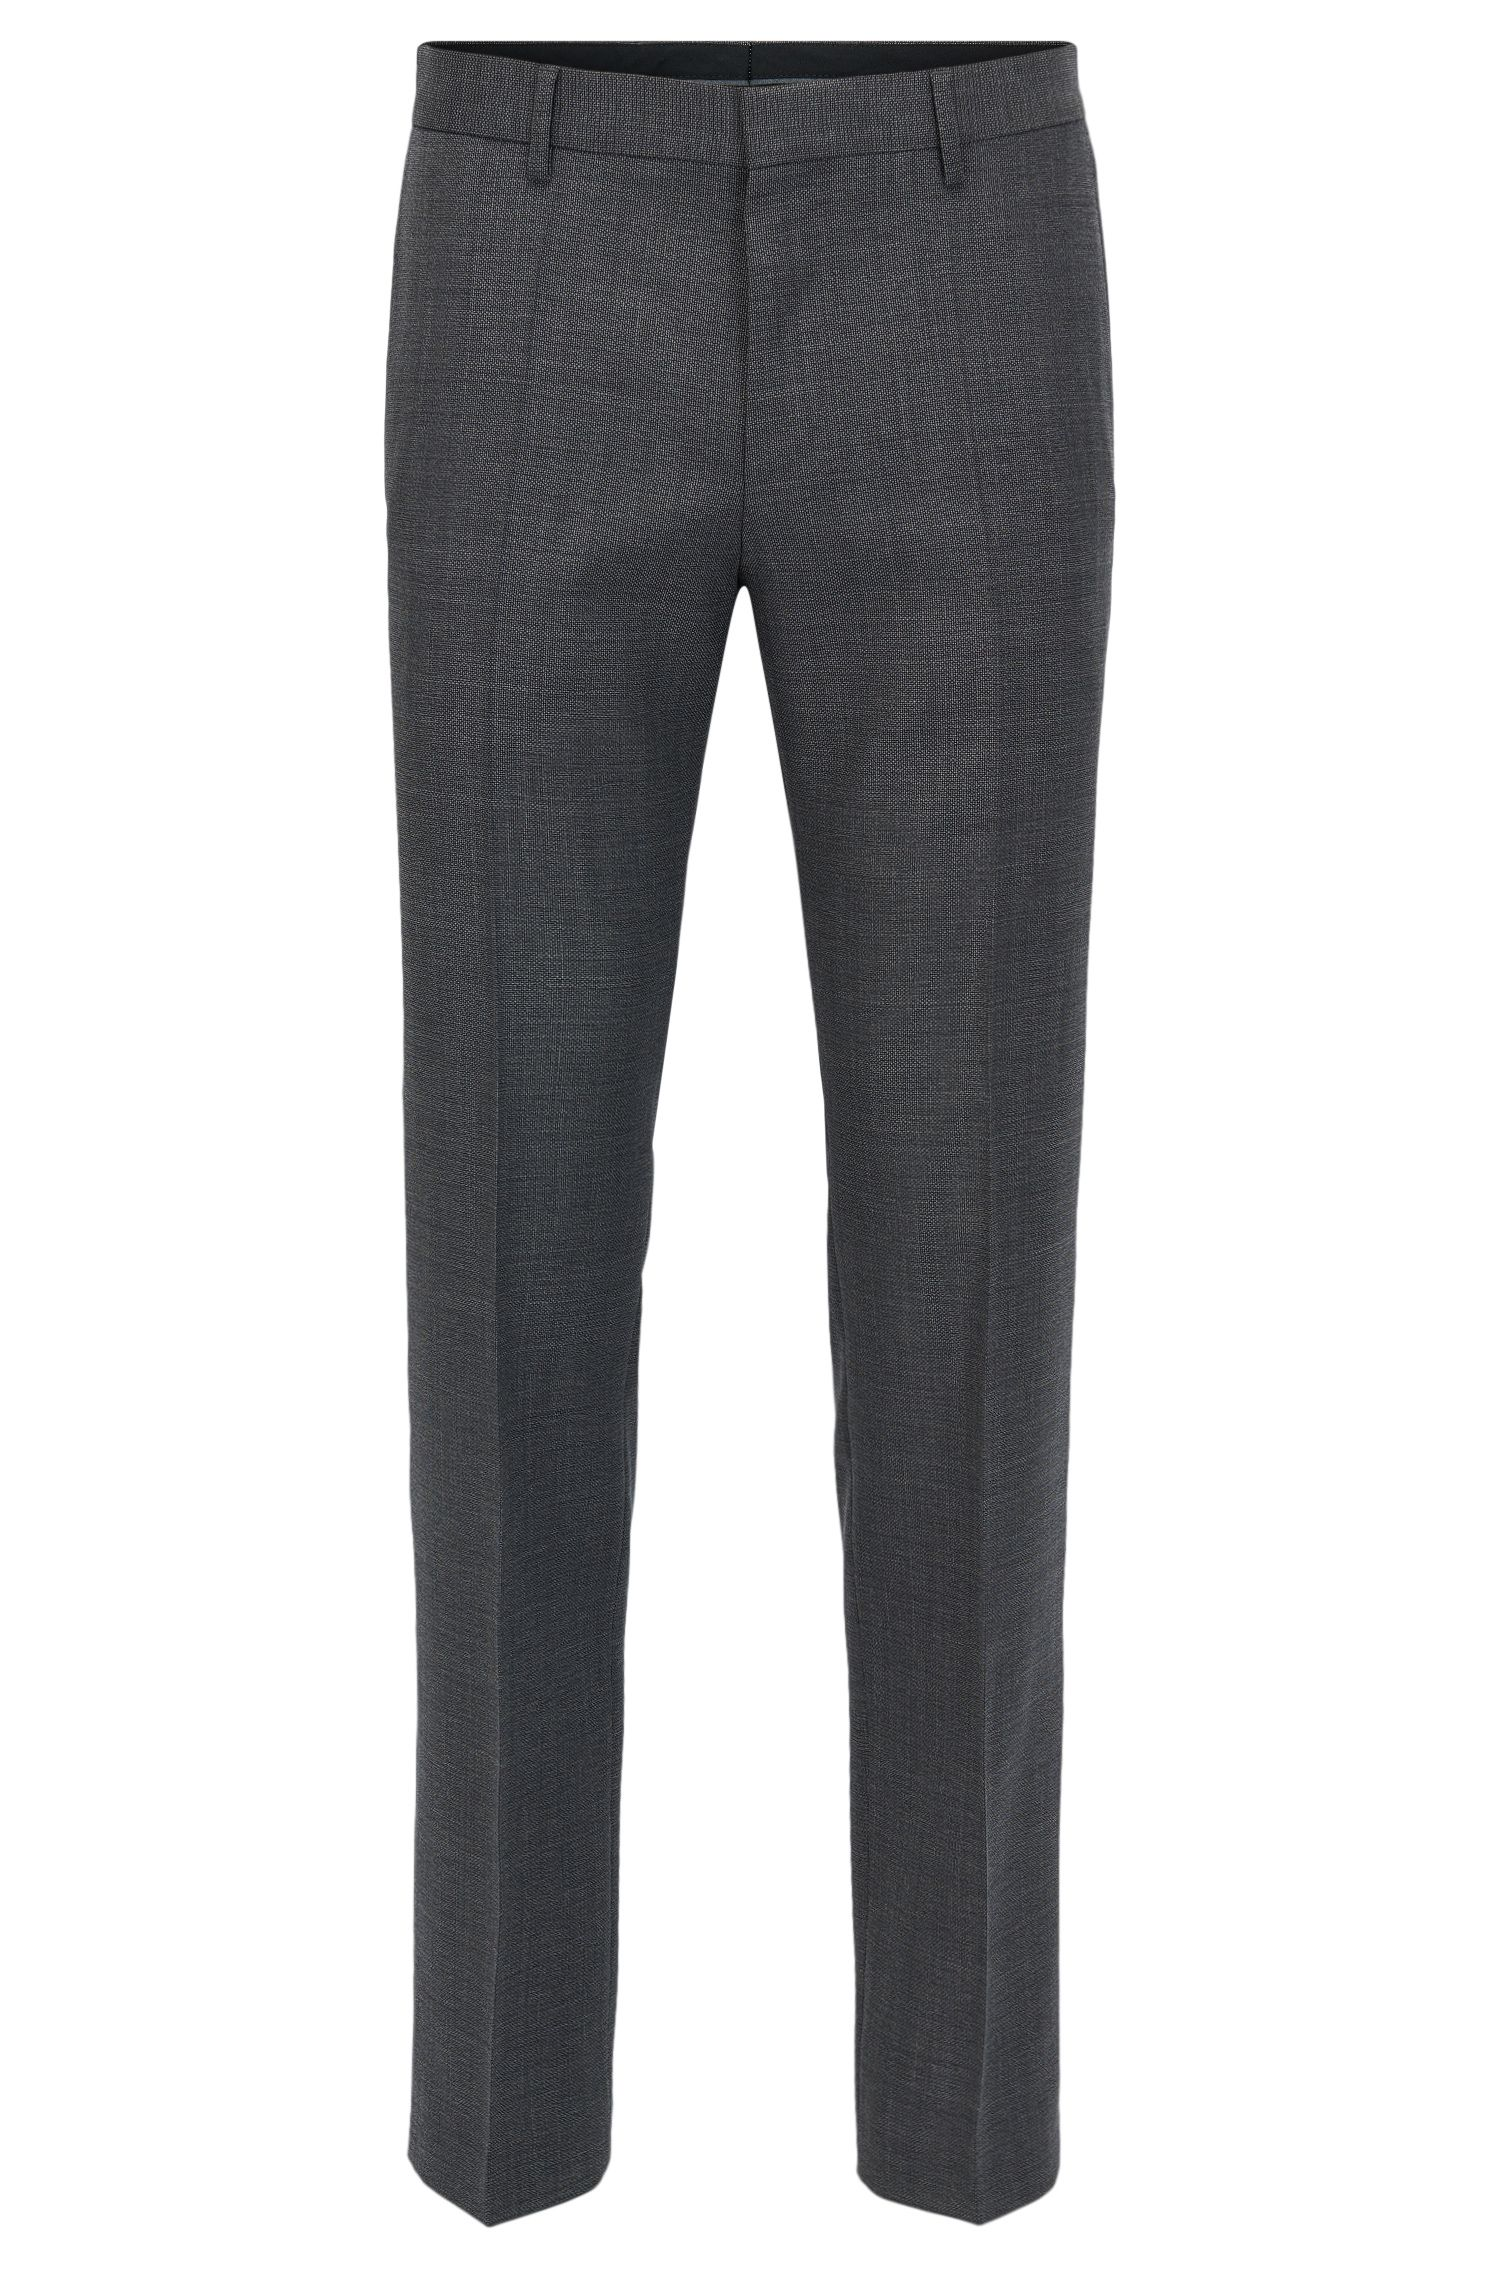 Slim-fit trousers in Tesse virgin wool serge with natural stretch